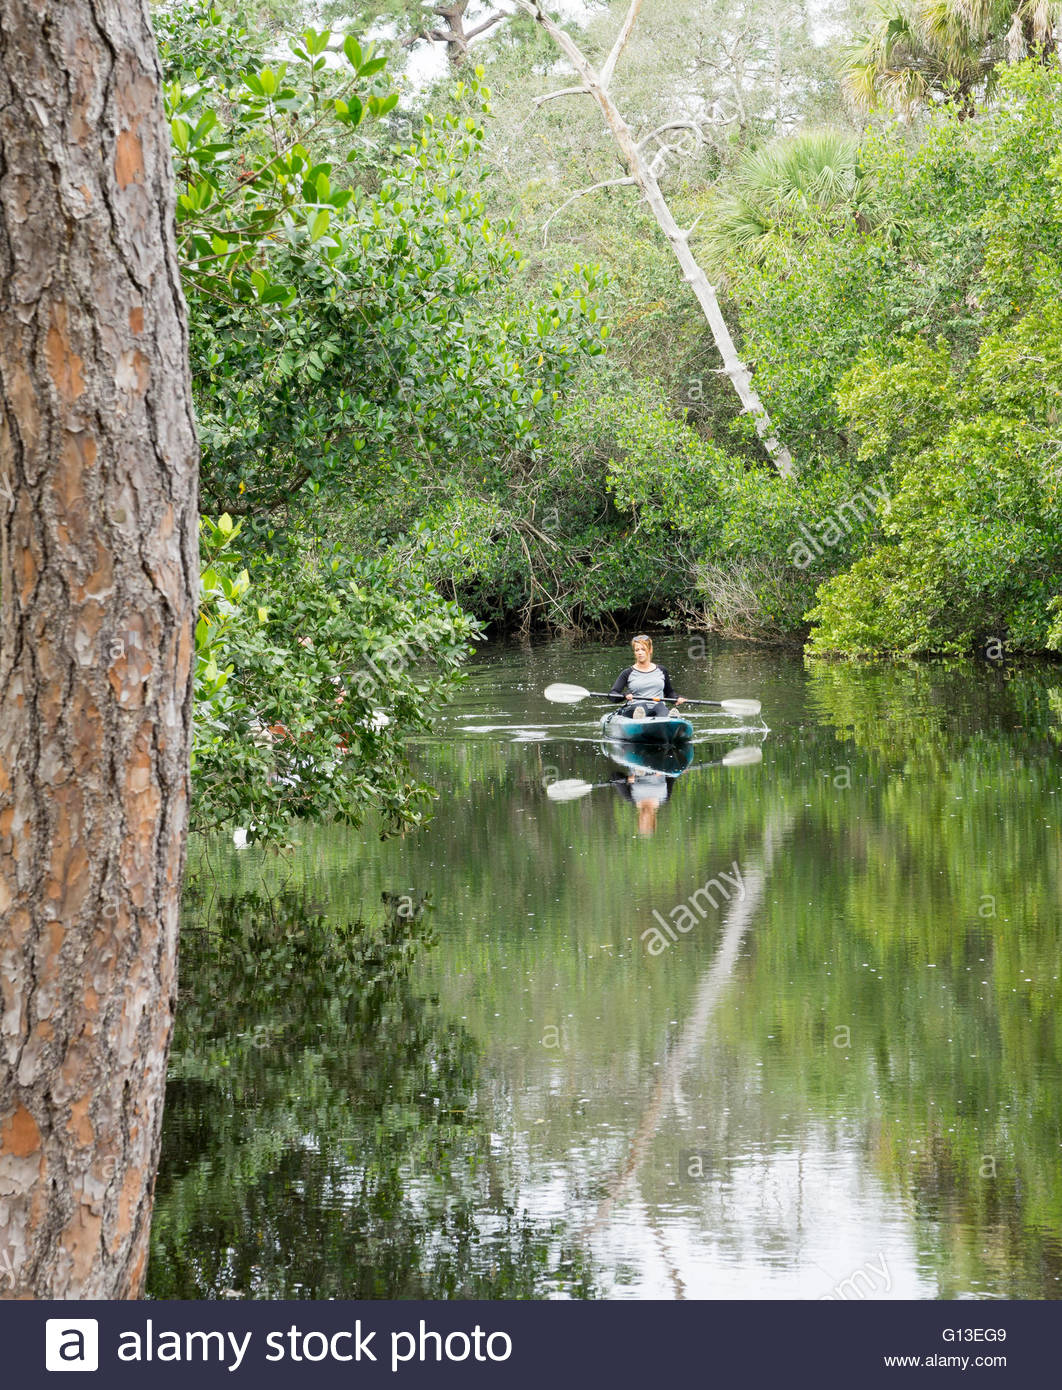 A woman kayaks on the Estero River along the Koreshan State Historic Site in Estero, Florida Stock Photo